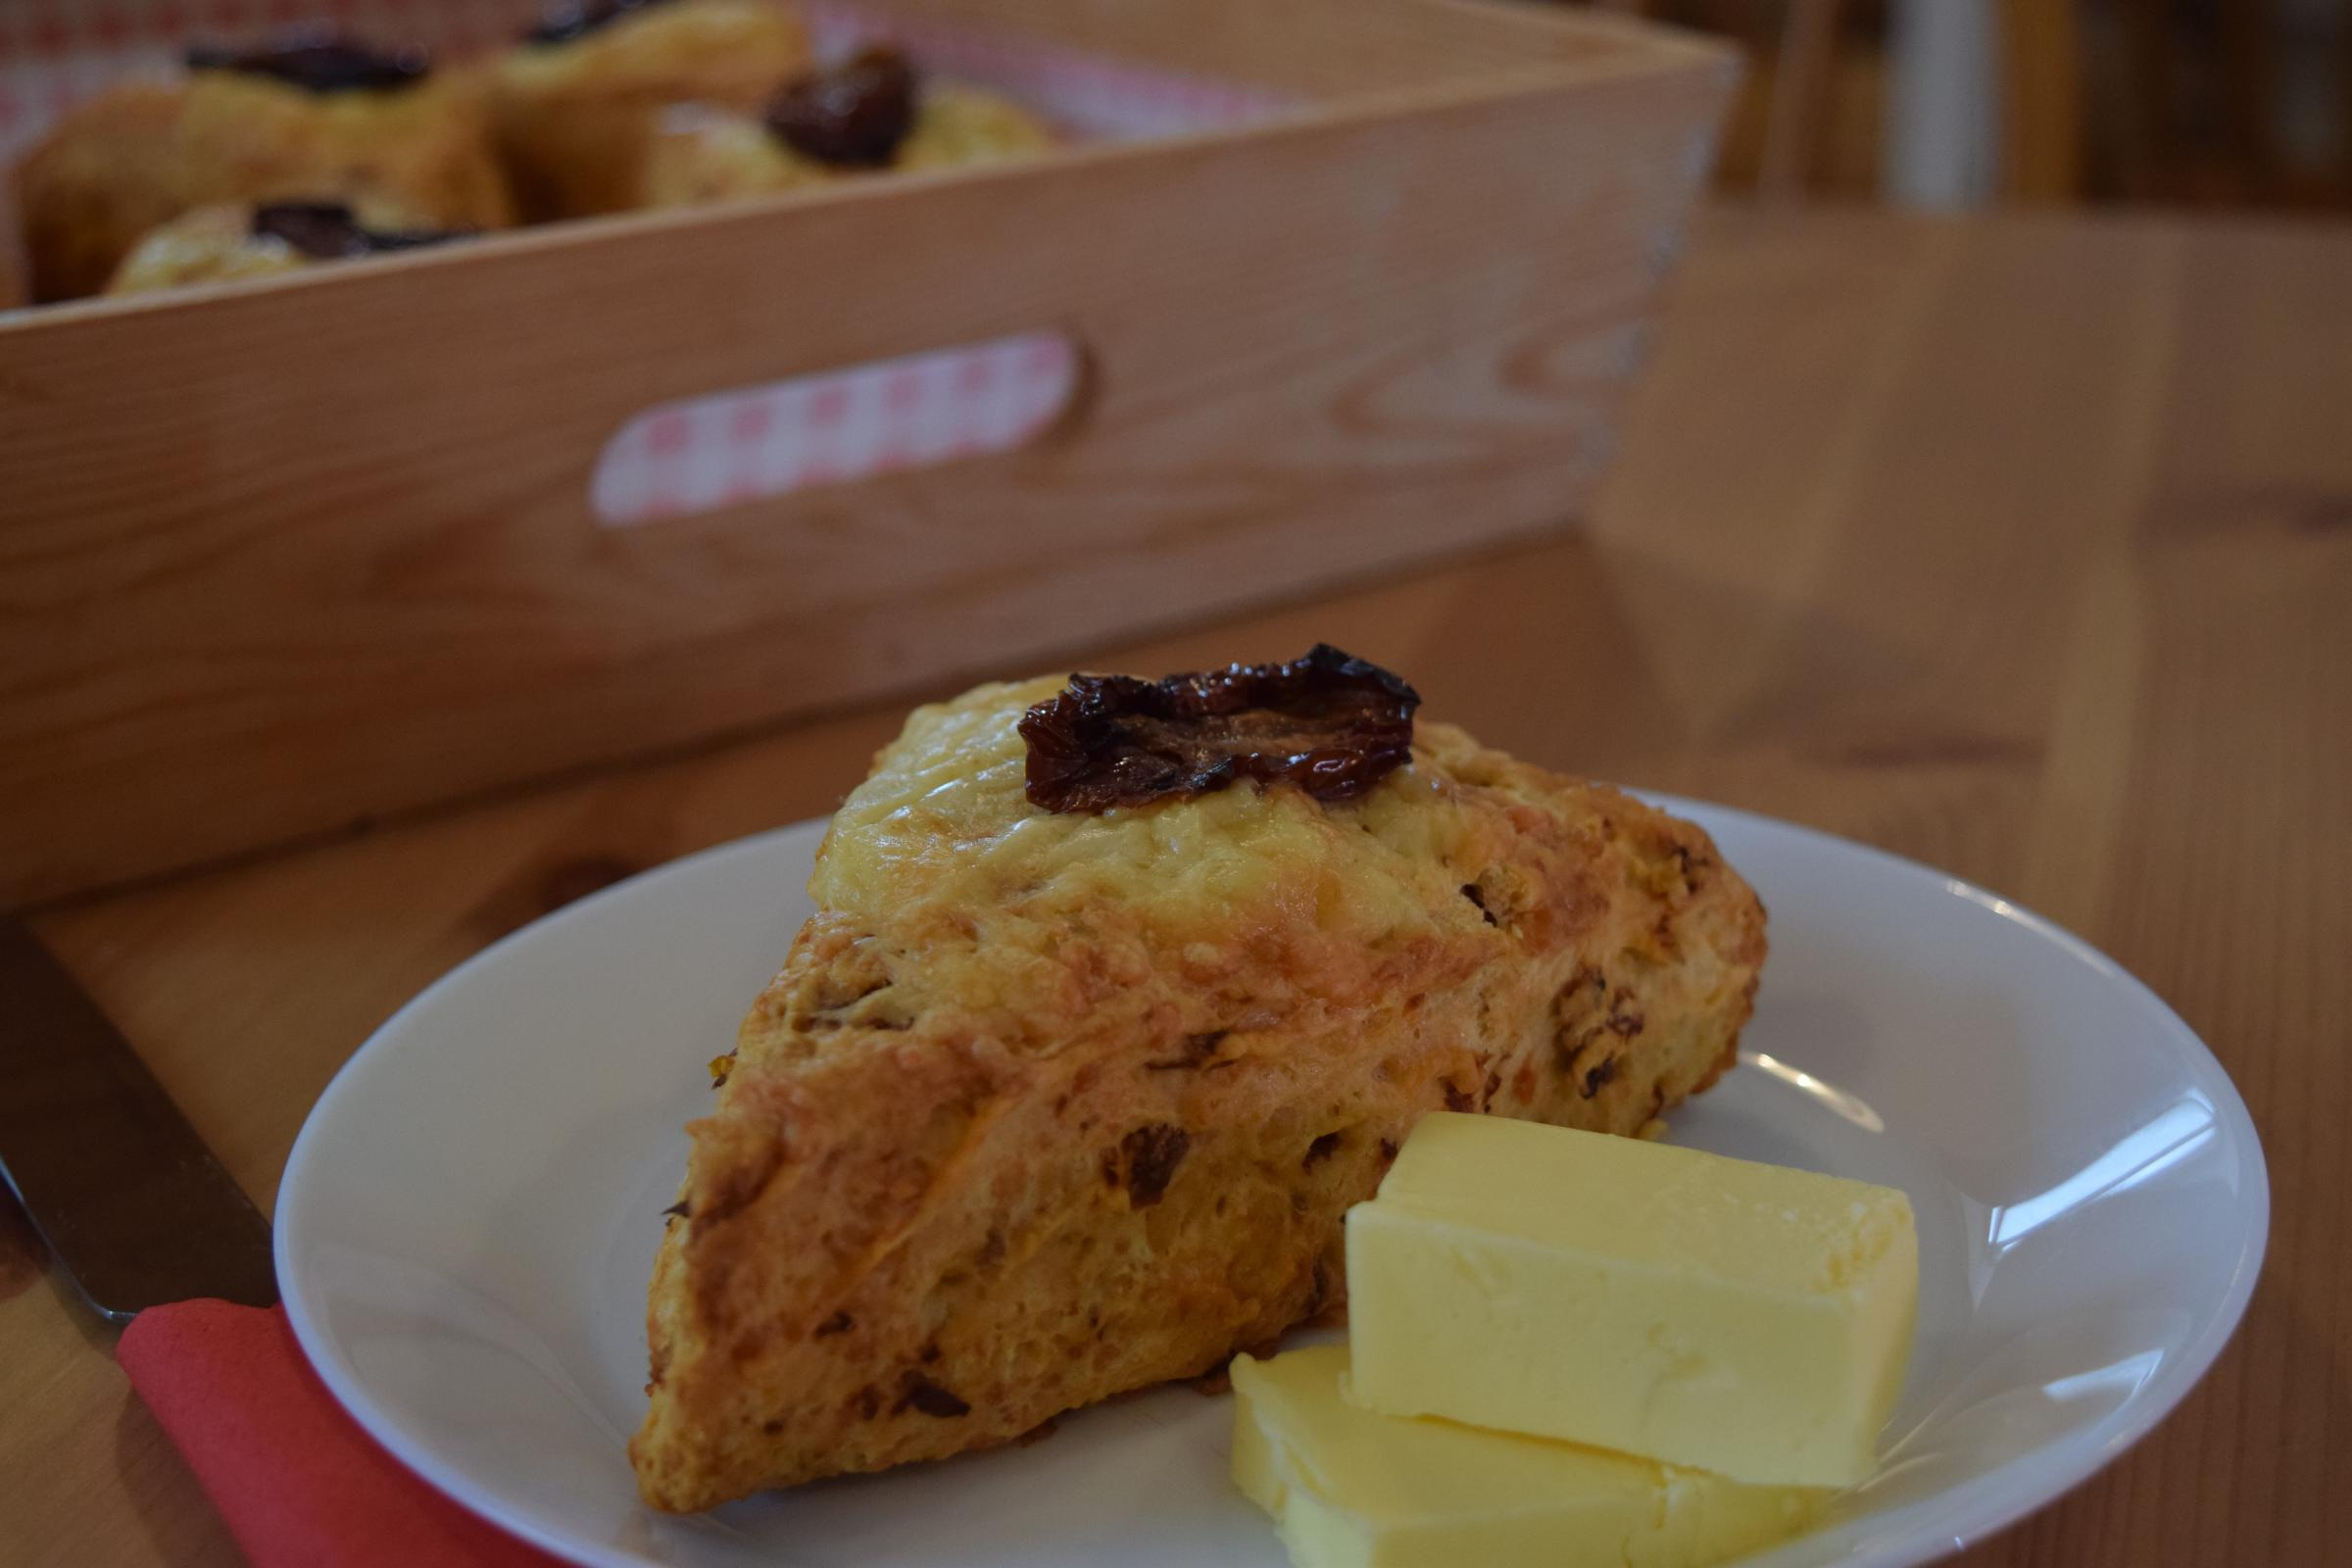 Recipe of the Day: Sun-dried tomato & cheddar scones by Bad Girl Bakery